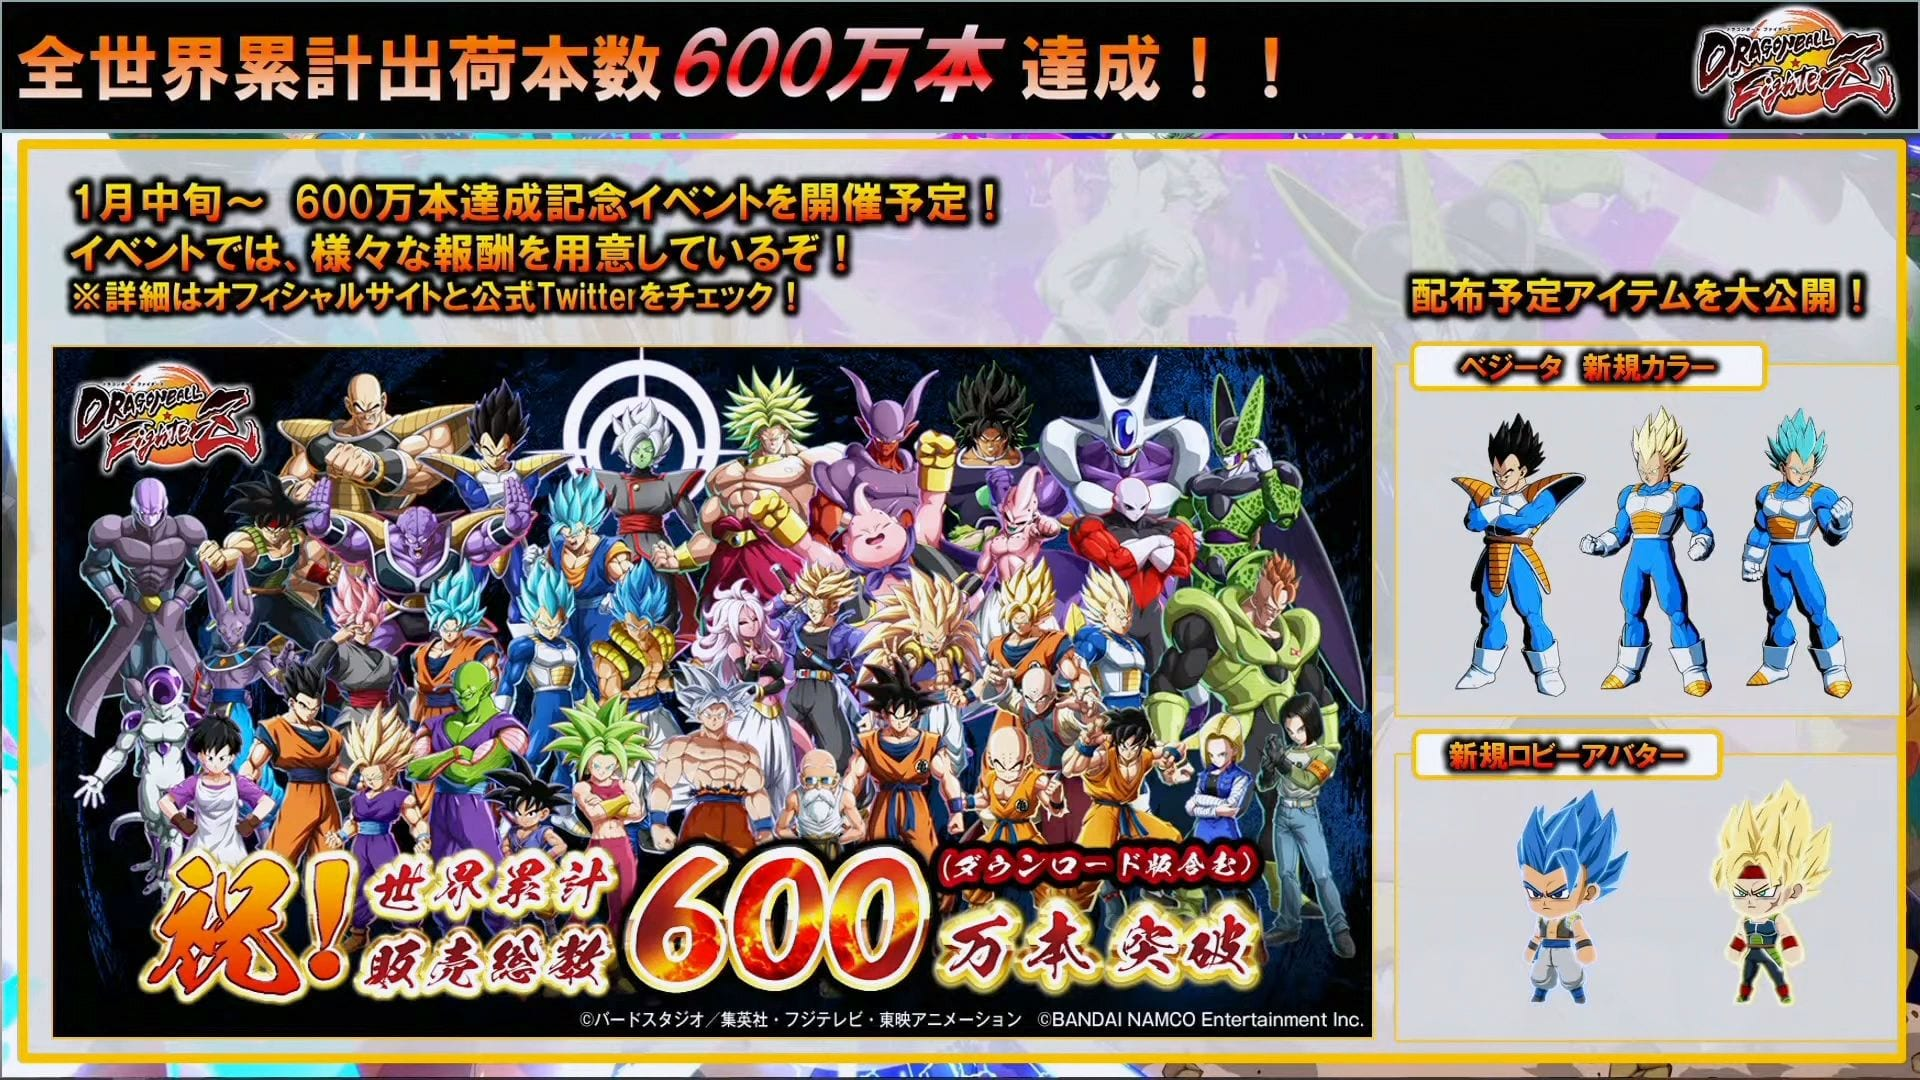 New Dragon Ball FighterZ DLC Characters Tremendous Child 2 & Gogeta SS4 Introduced; 6 Million Models Shipped 1